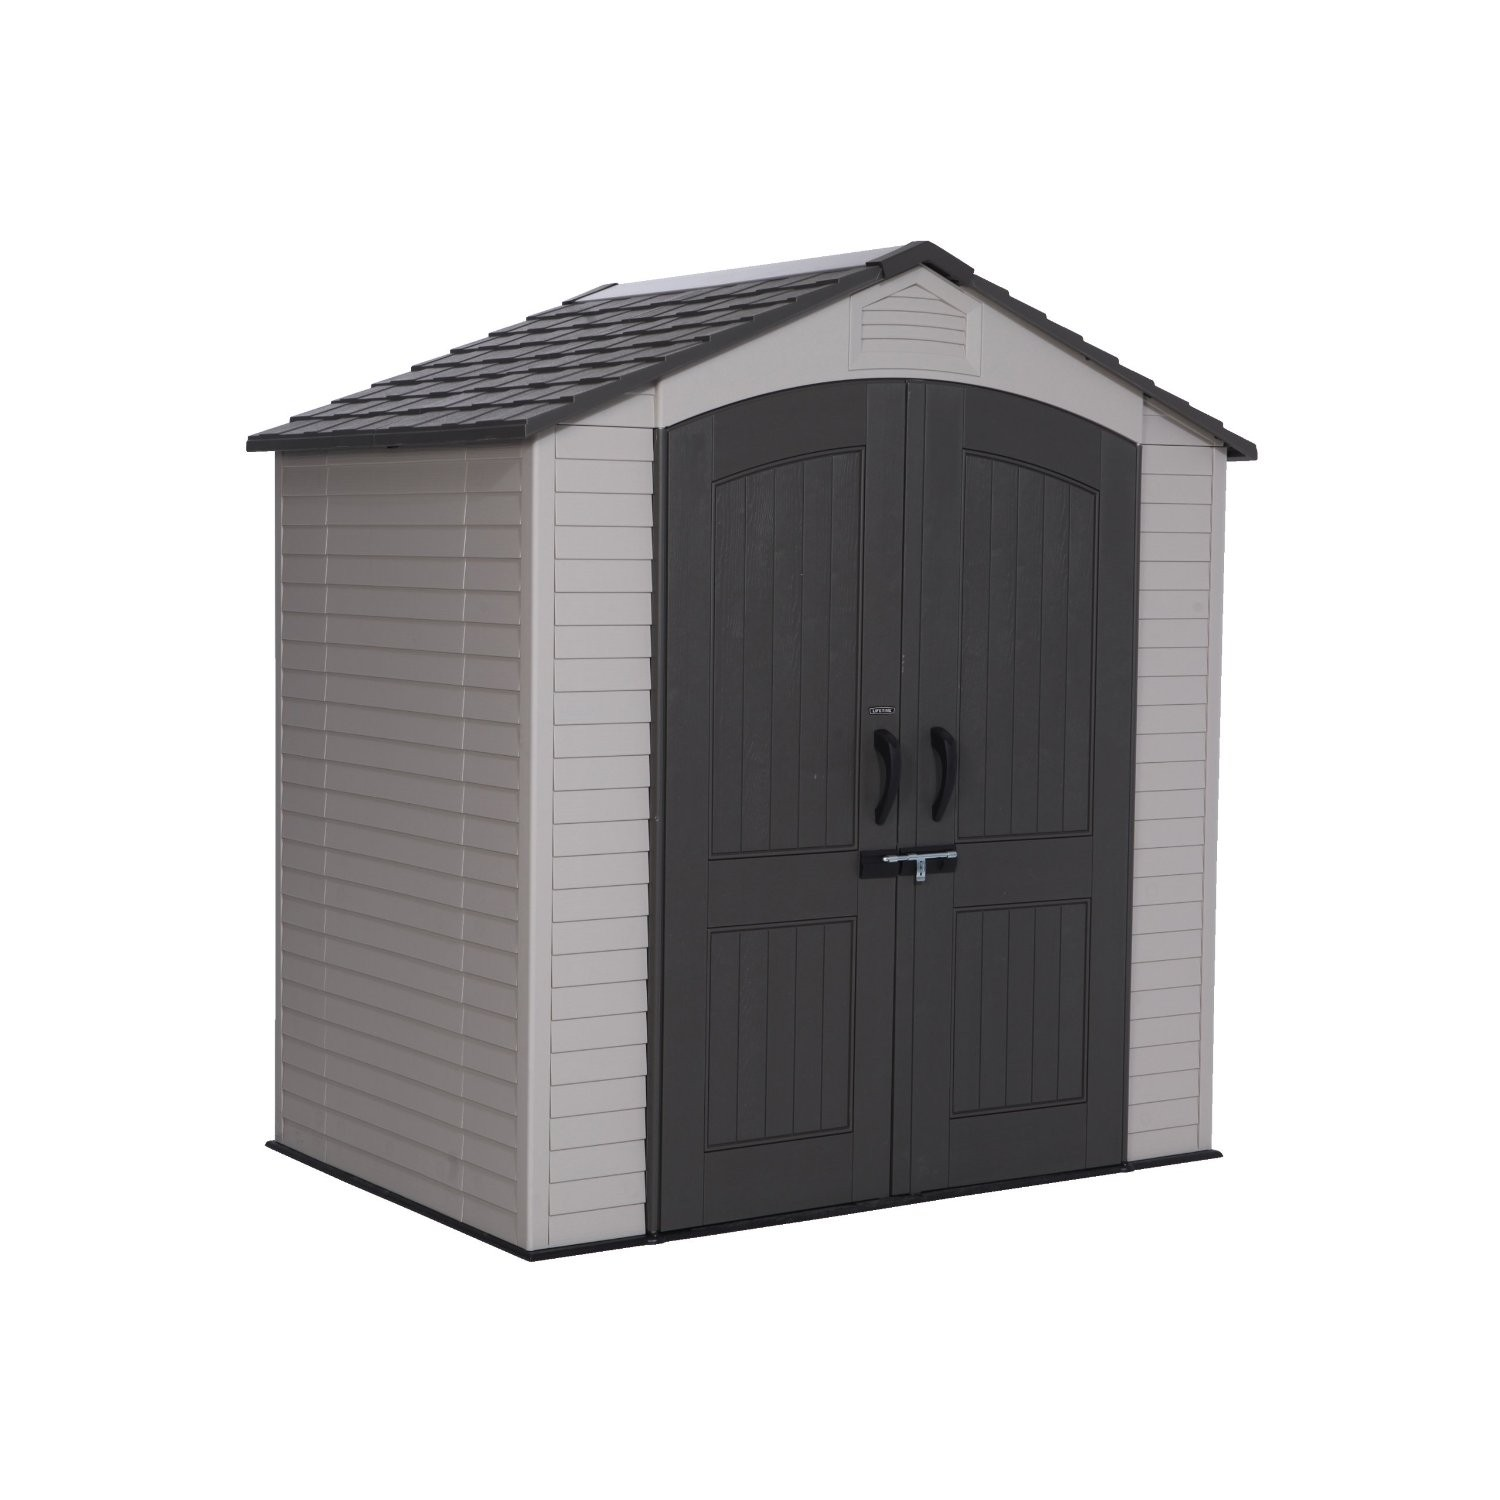 Lifetime 7x4 5 plastic shed for Garden shed 7x4